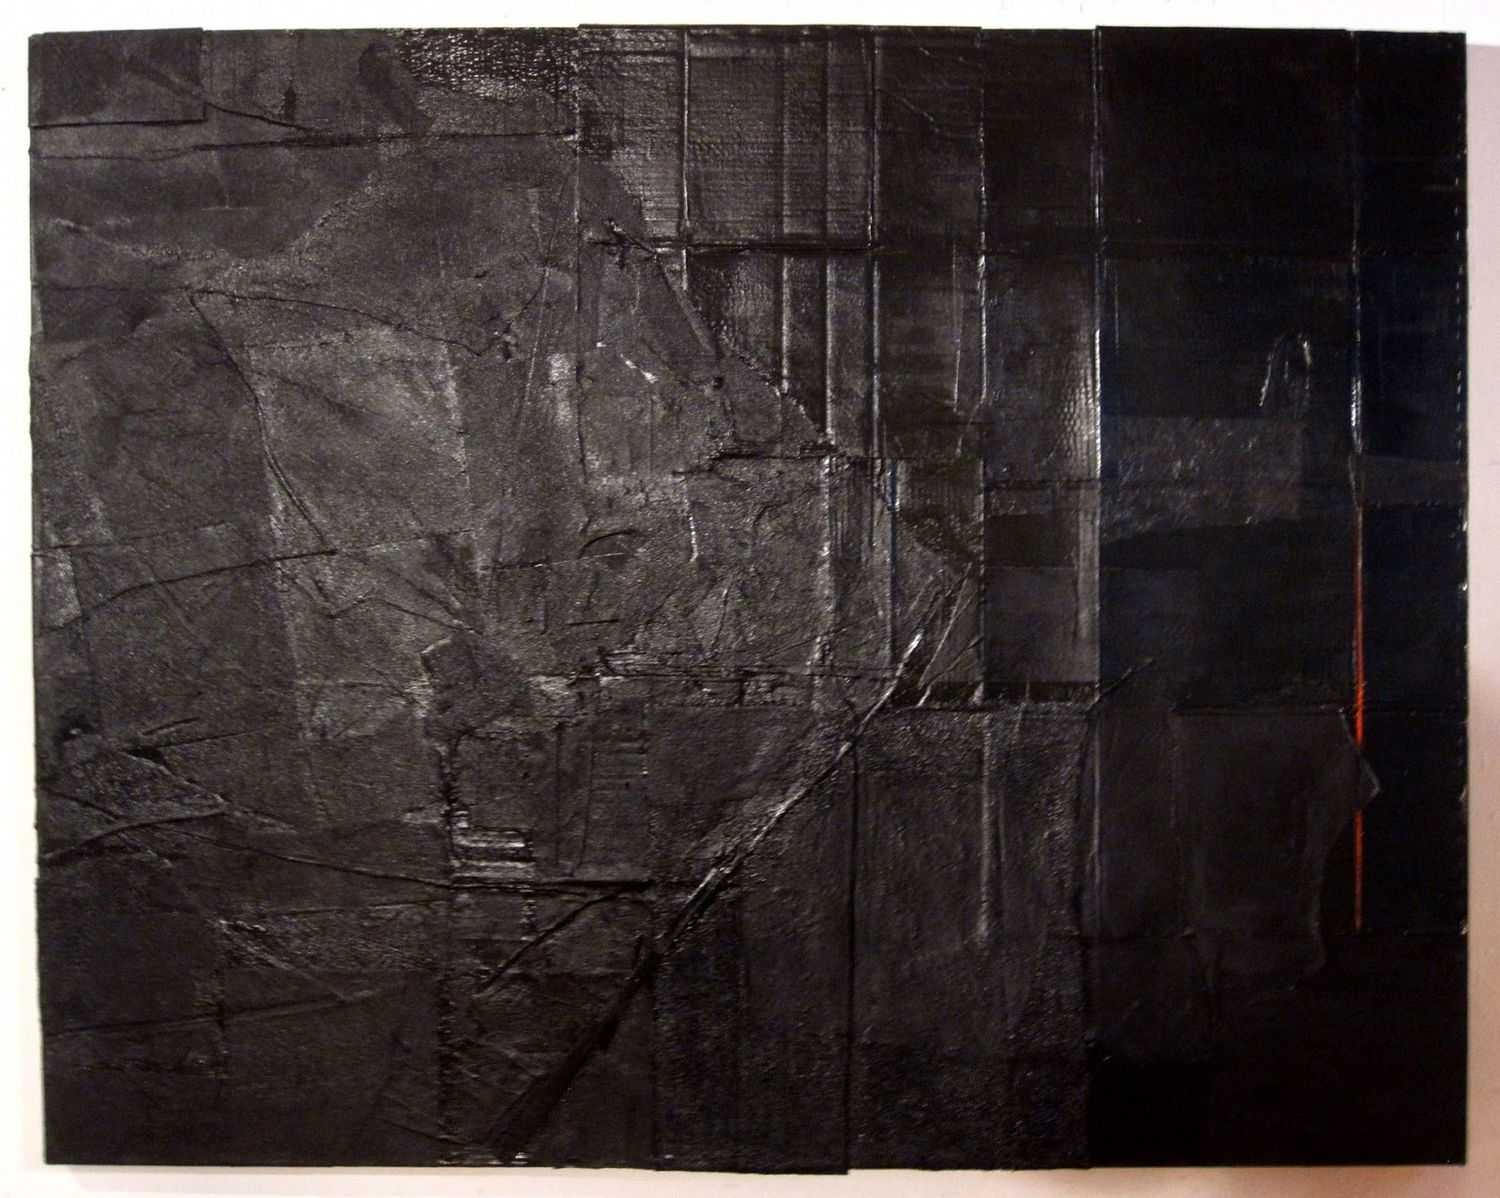 "Large Black with Red Vertical, 2013, acrylic, cardboard, fabric and wood on canvas, 60"" x 76"""